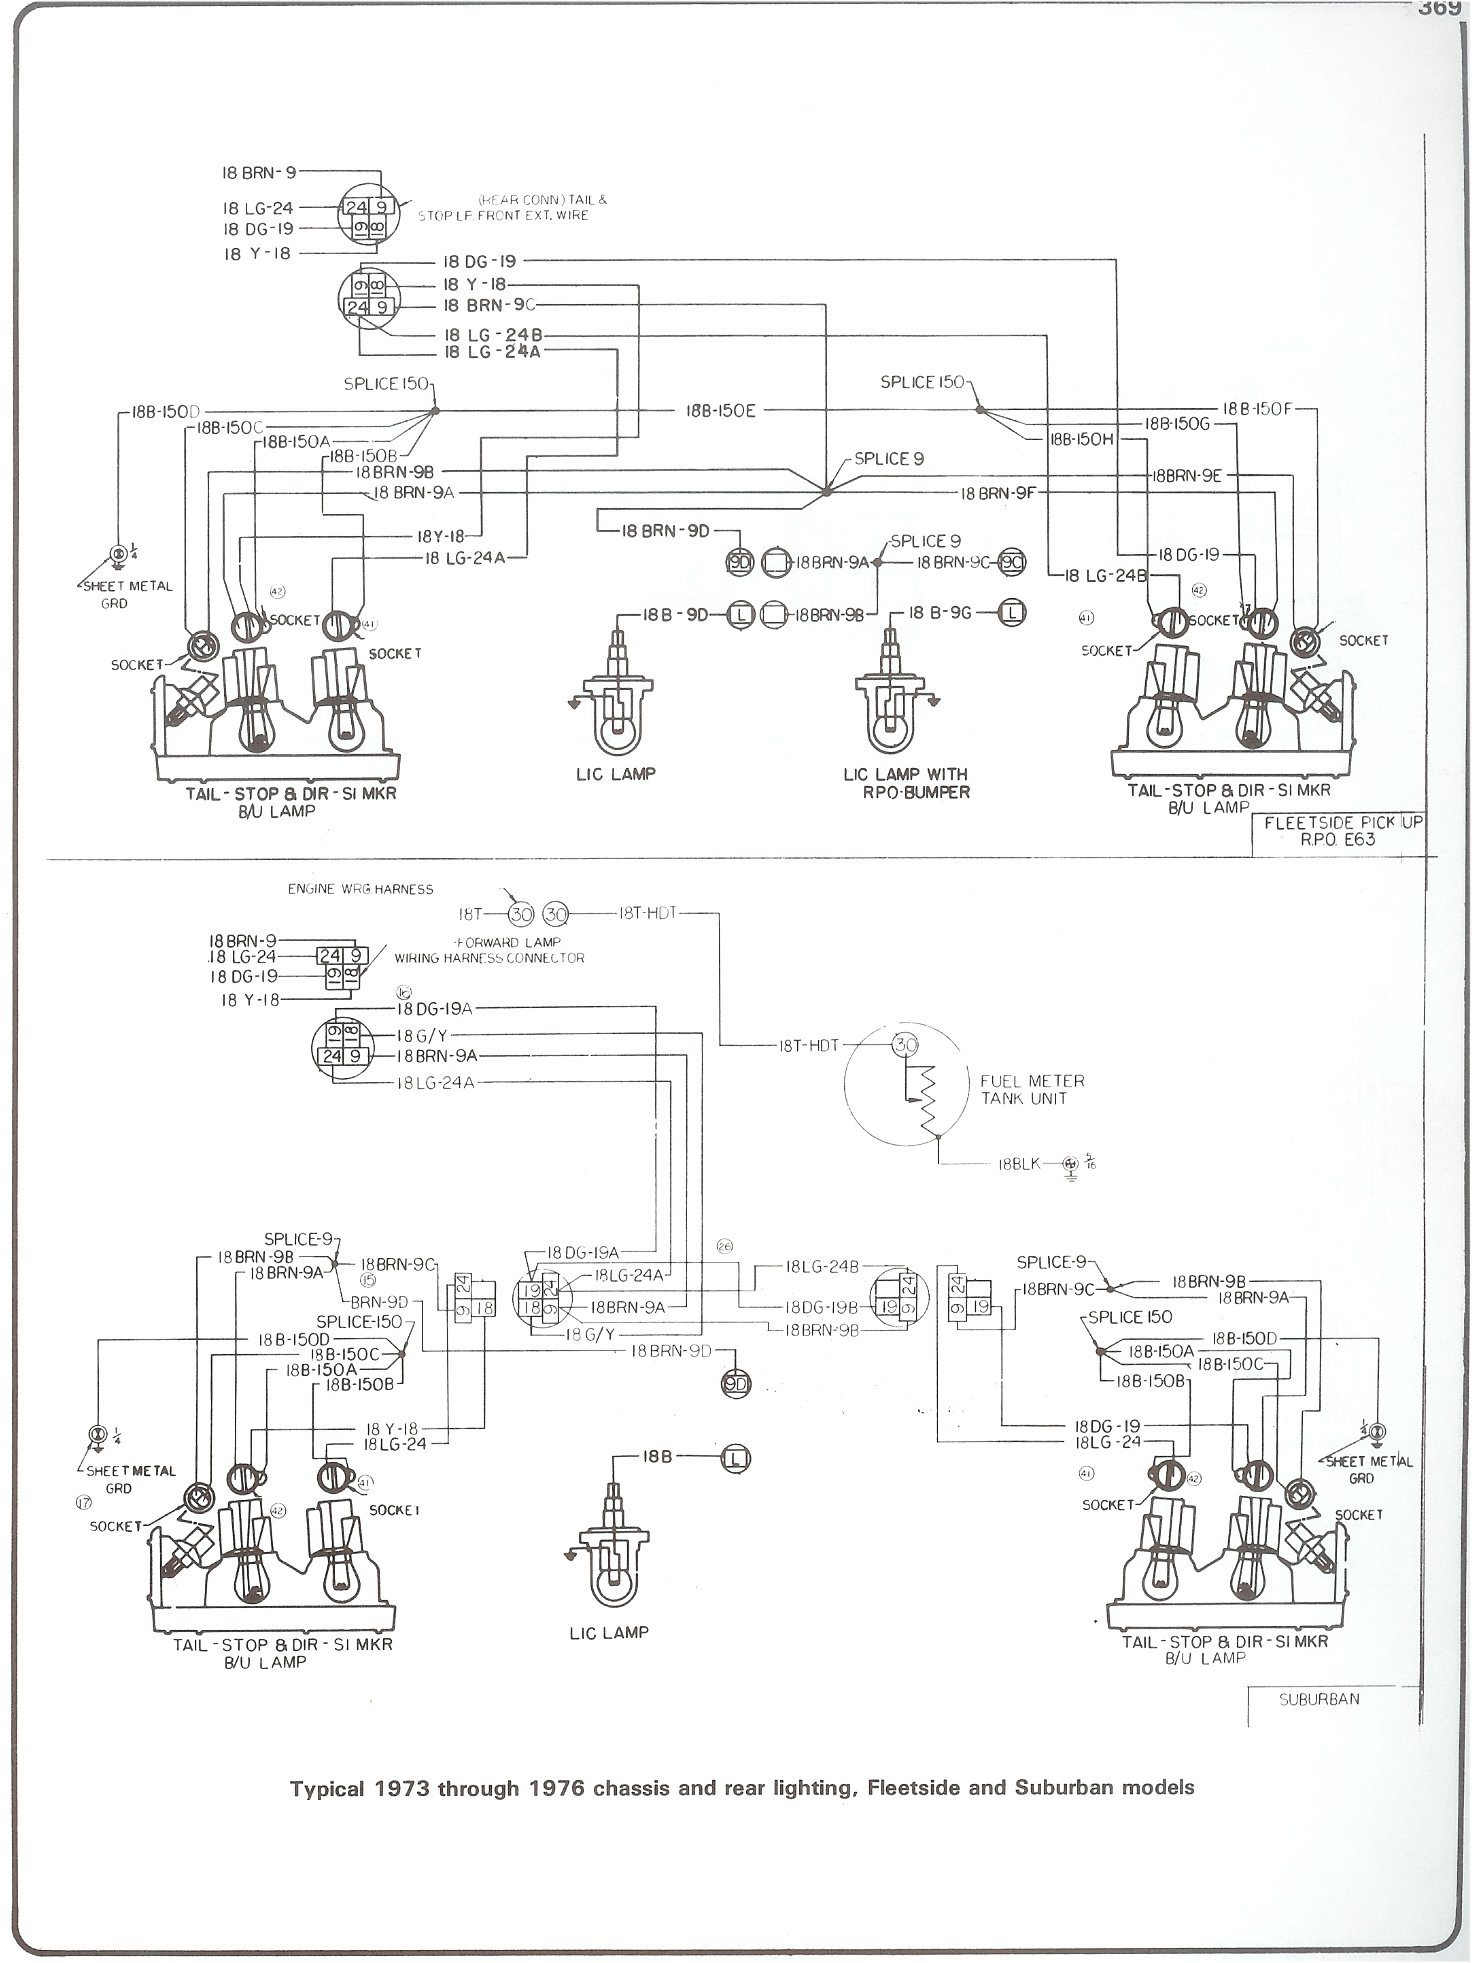 73 camaro engine wiring diagram  | 850 x 1090